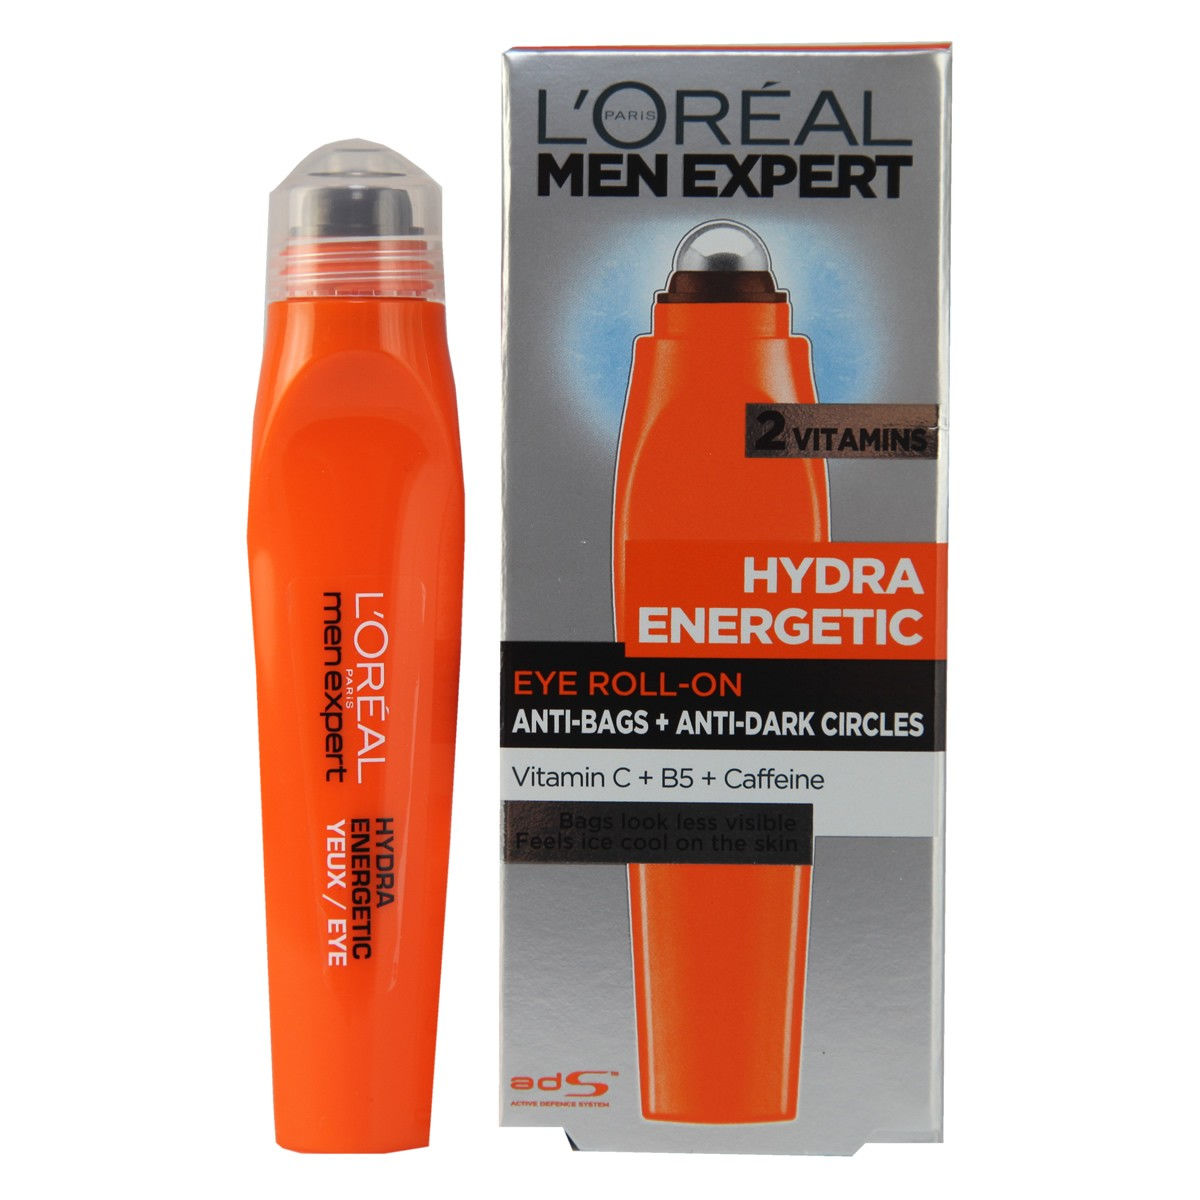 L'Oreal Paris Men Expert Hydra Energetic Eye Roll On